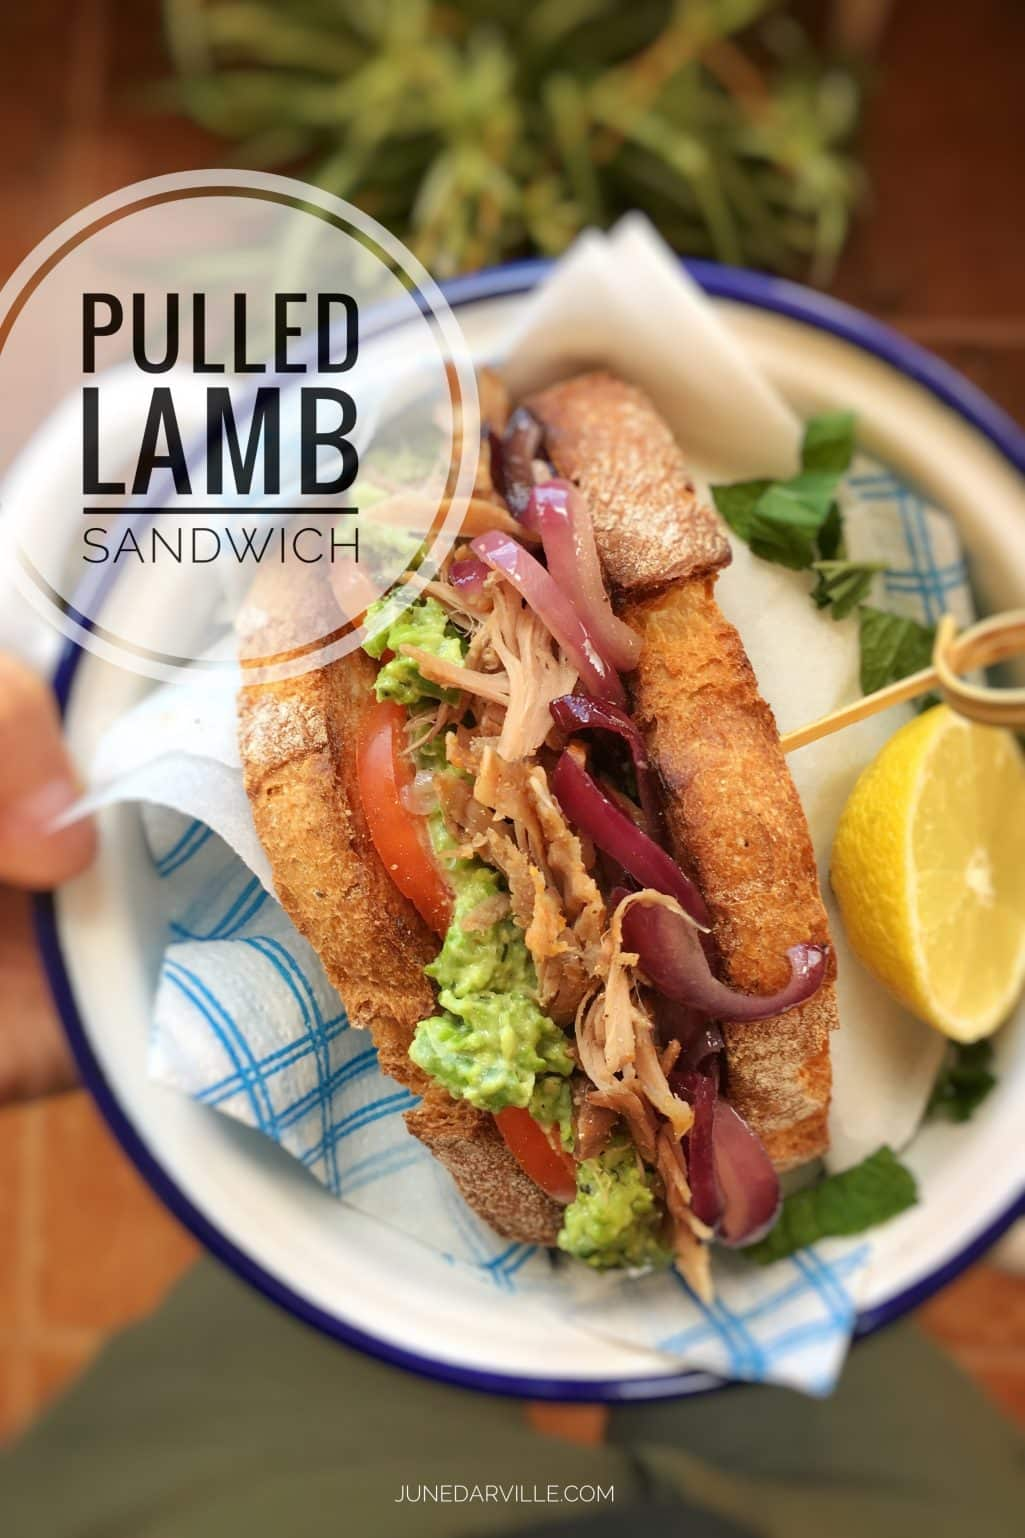 Got leftover lamb roast in the fridge? How about making a pulled lamb sandwich for lunch to give the cold lamb a second chance? Bingo!